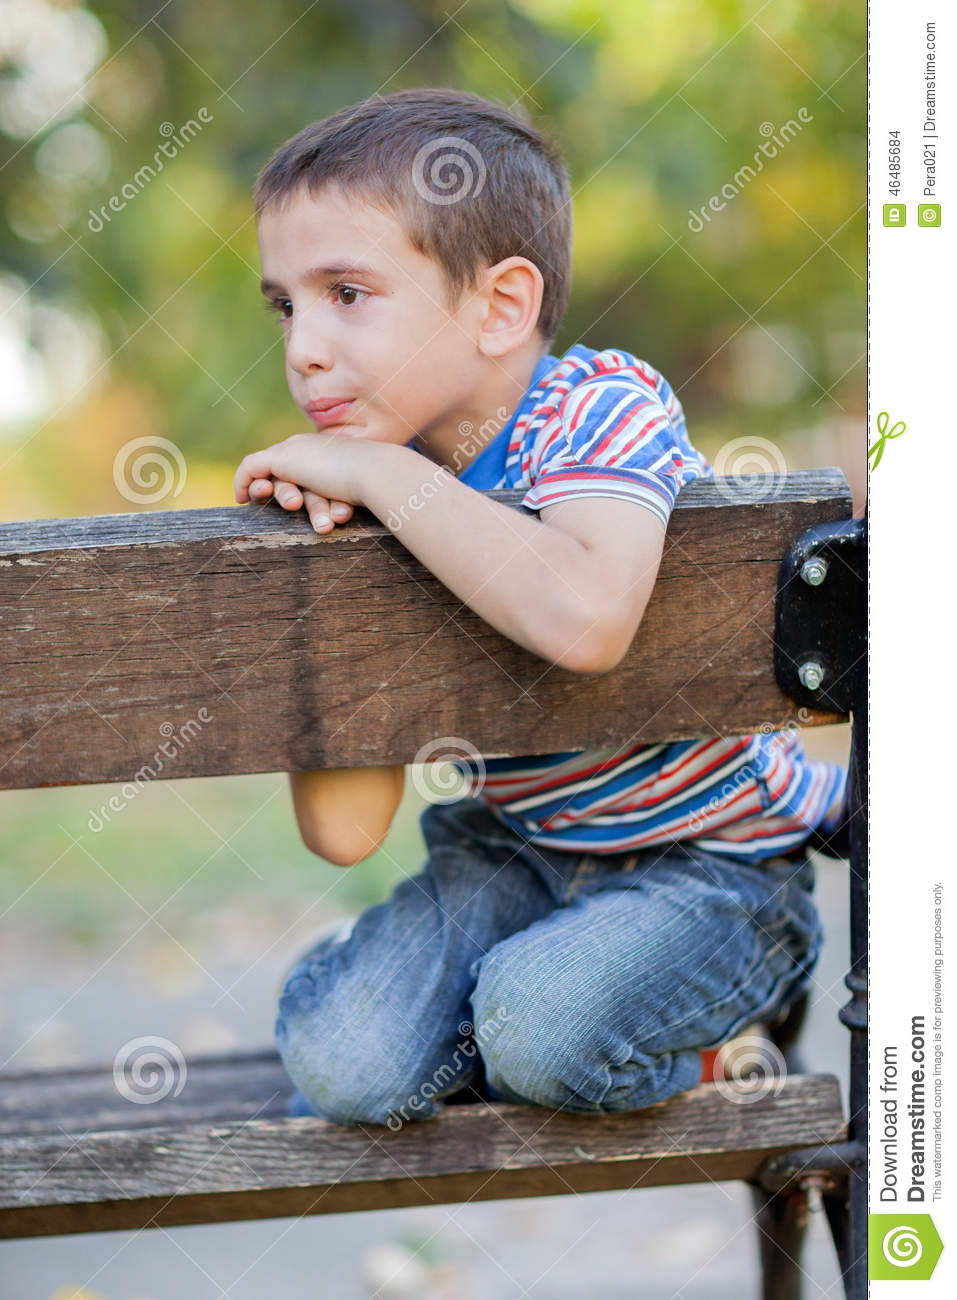 Orphan, Unhappy Boy Sitting On A Park Bench And Crying Stock Photo - Image: 46485684